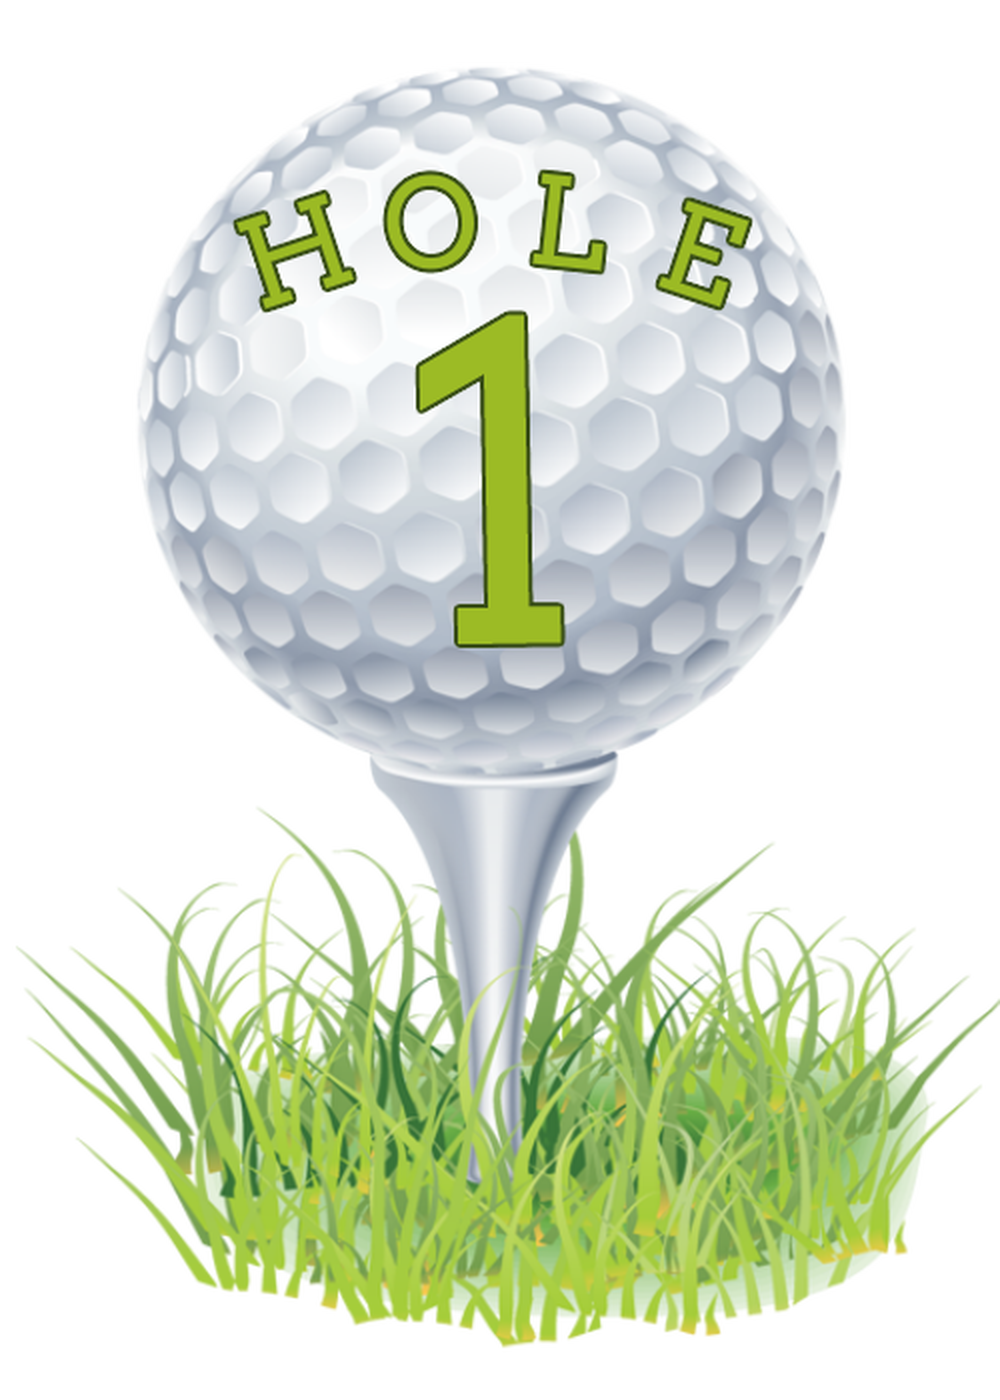 Golf club with ball png. Hole mountain ash promoting